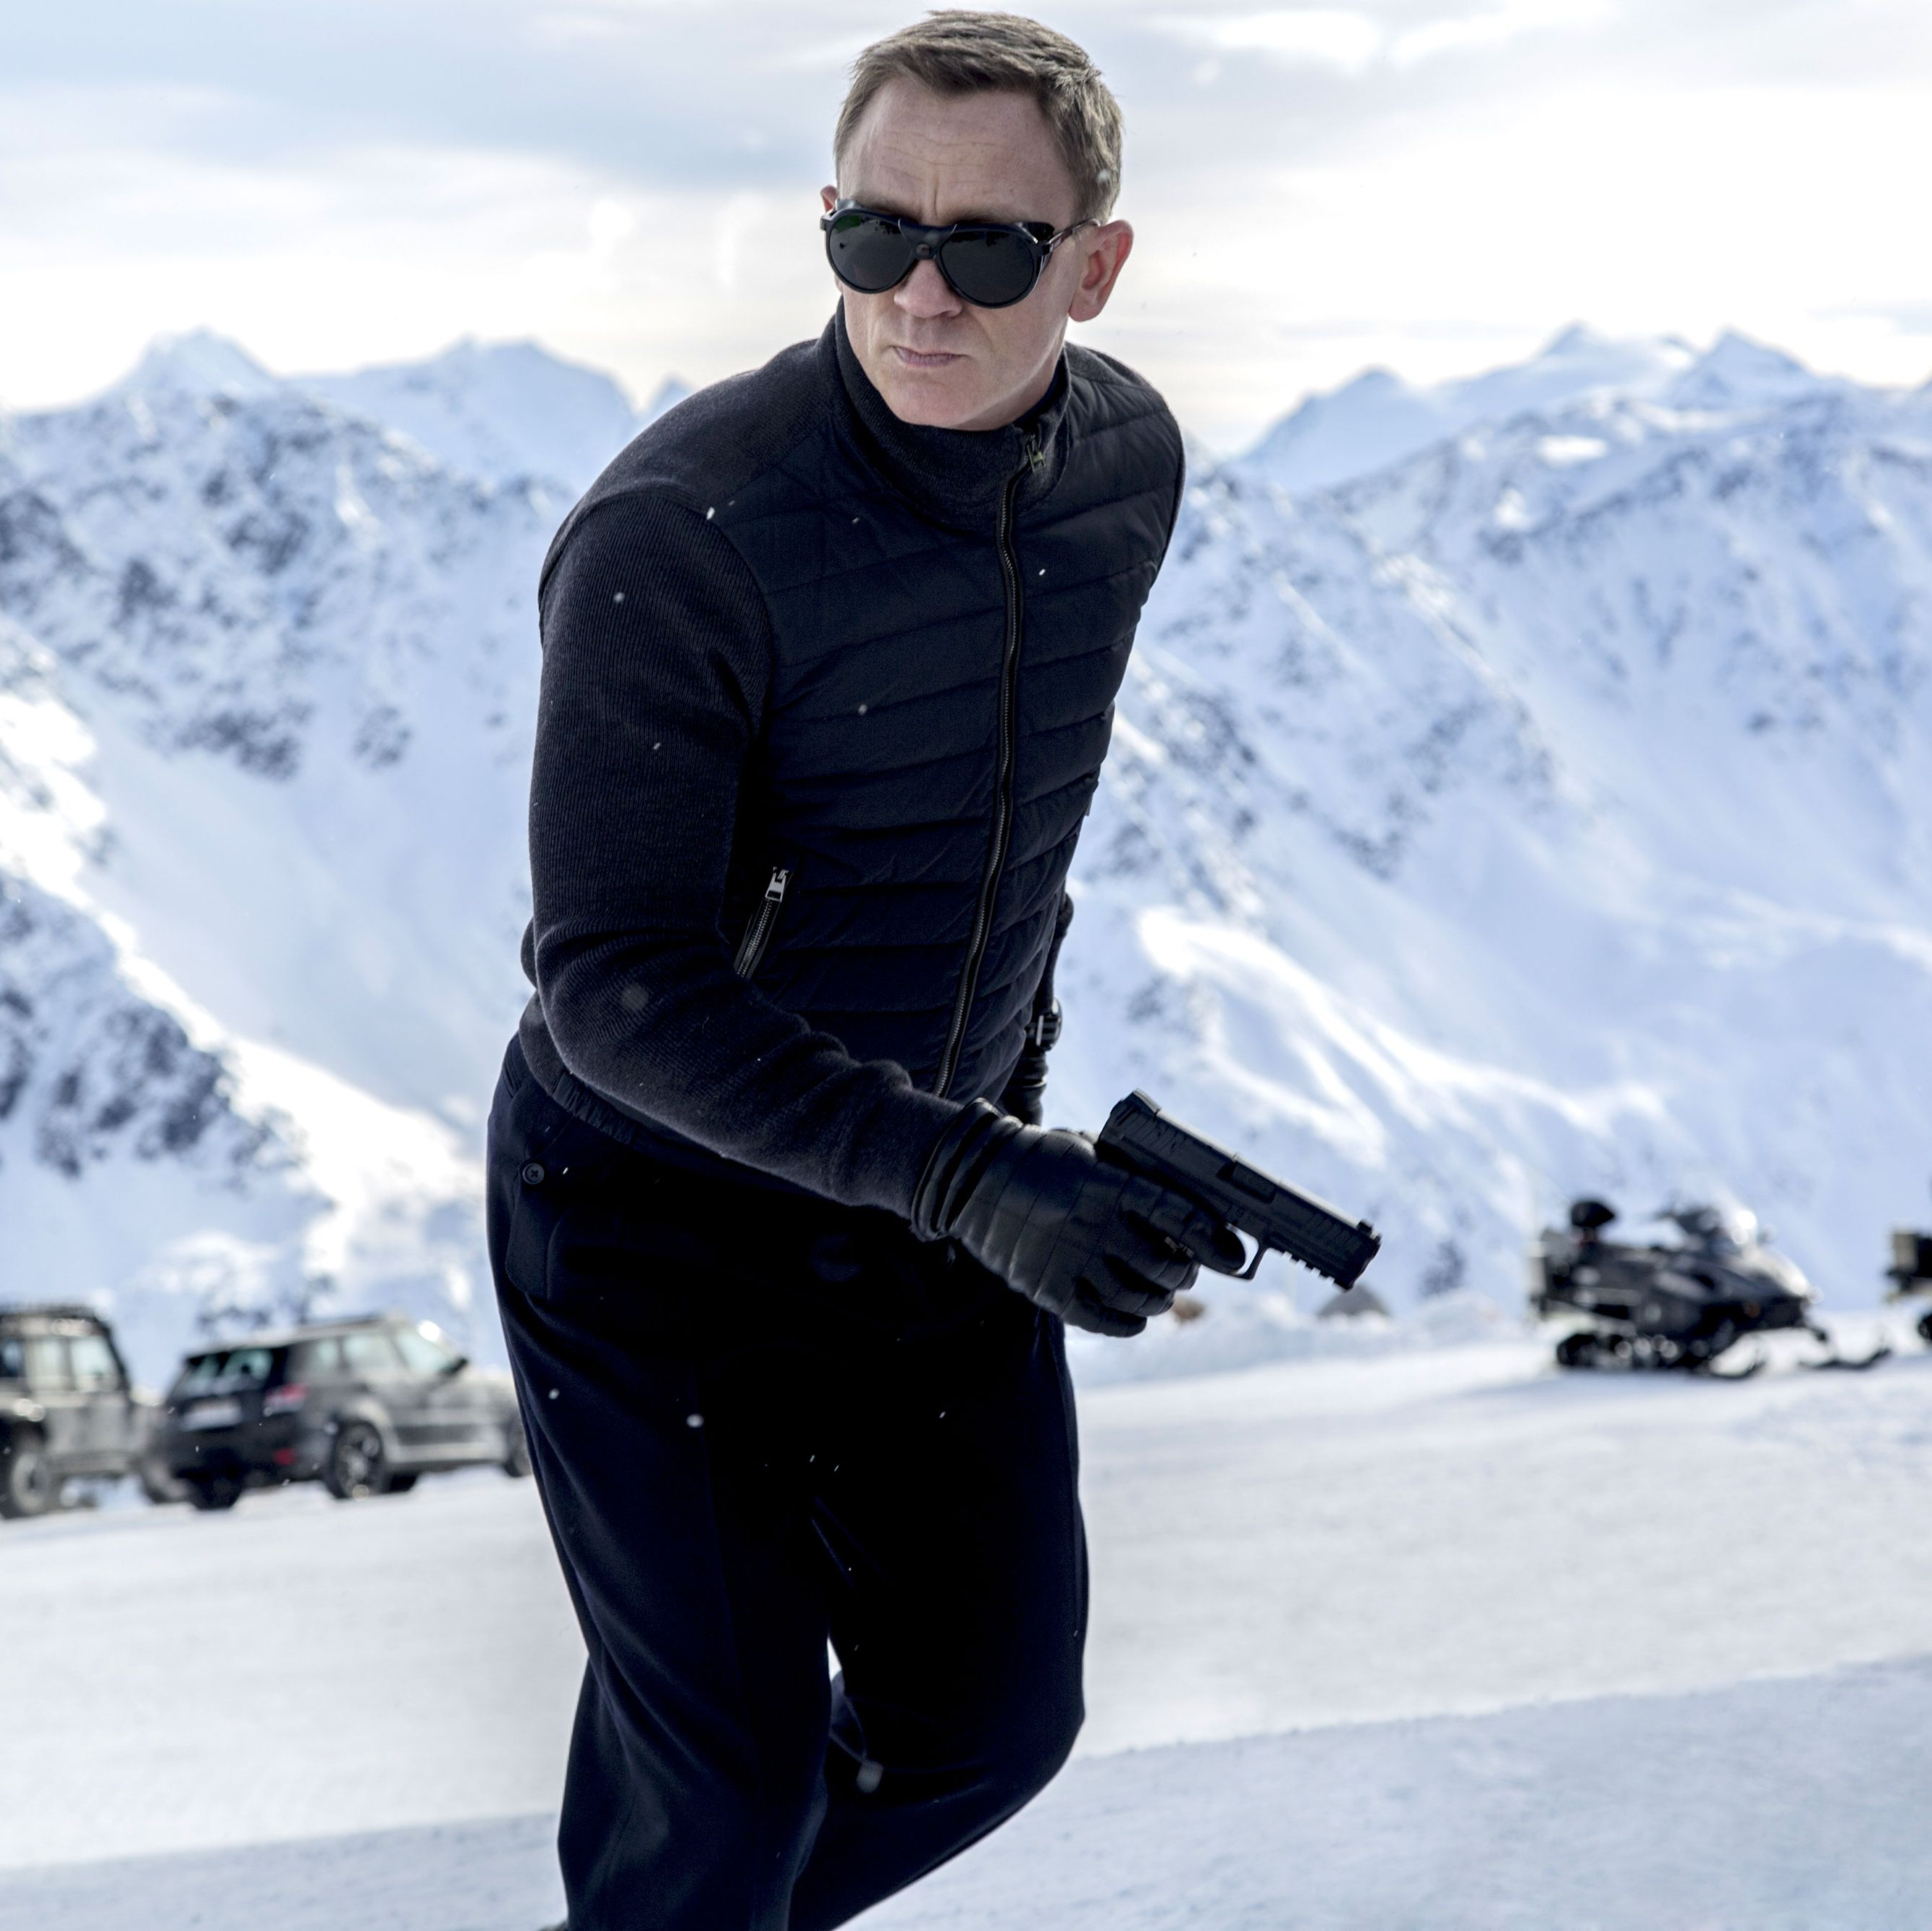 Bond 25 star Daniel Craig having surgery after on-set injury – here's how it will impact filming and release